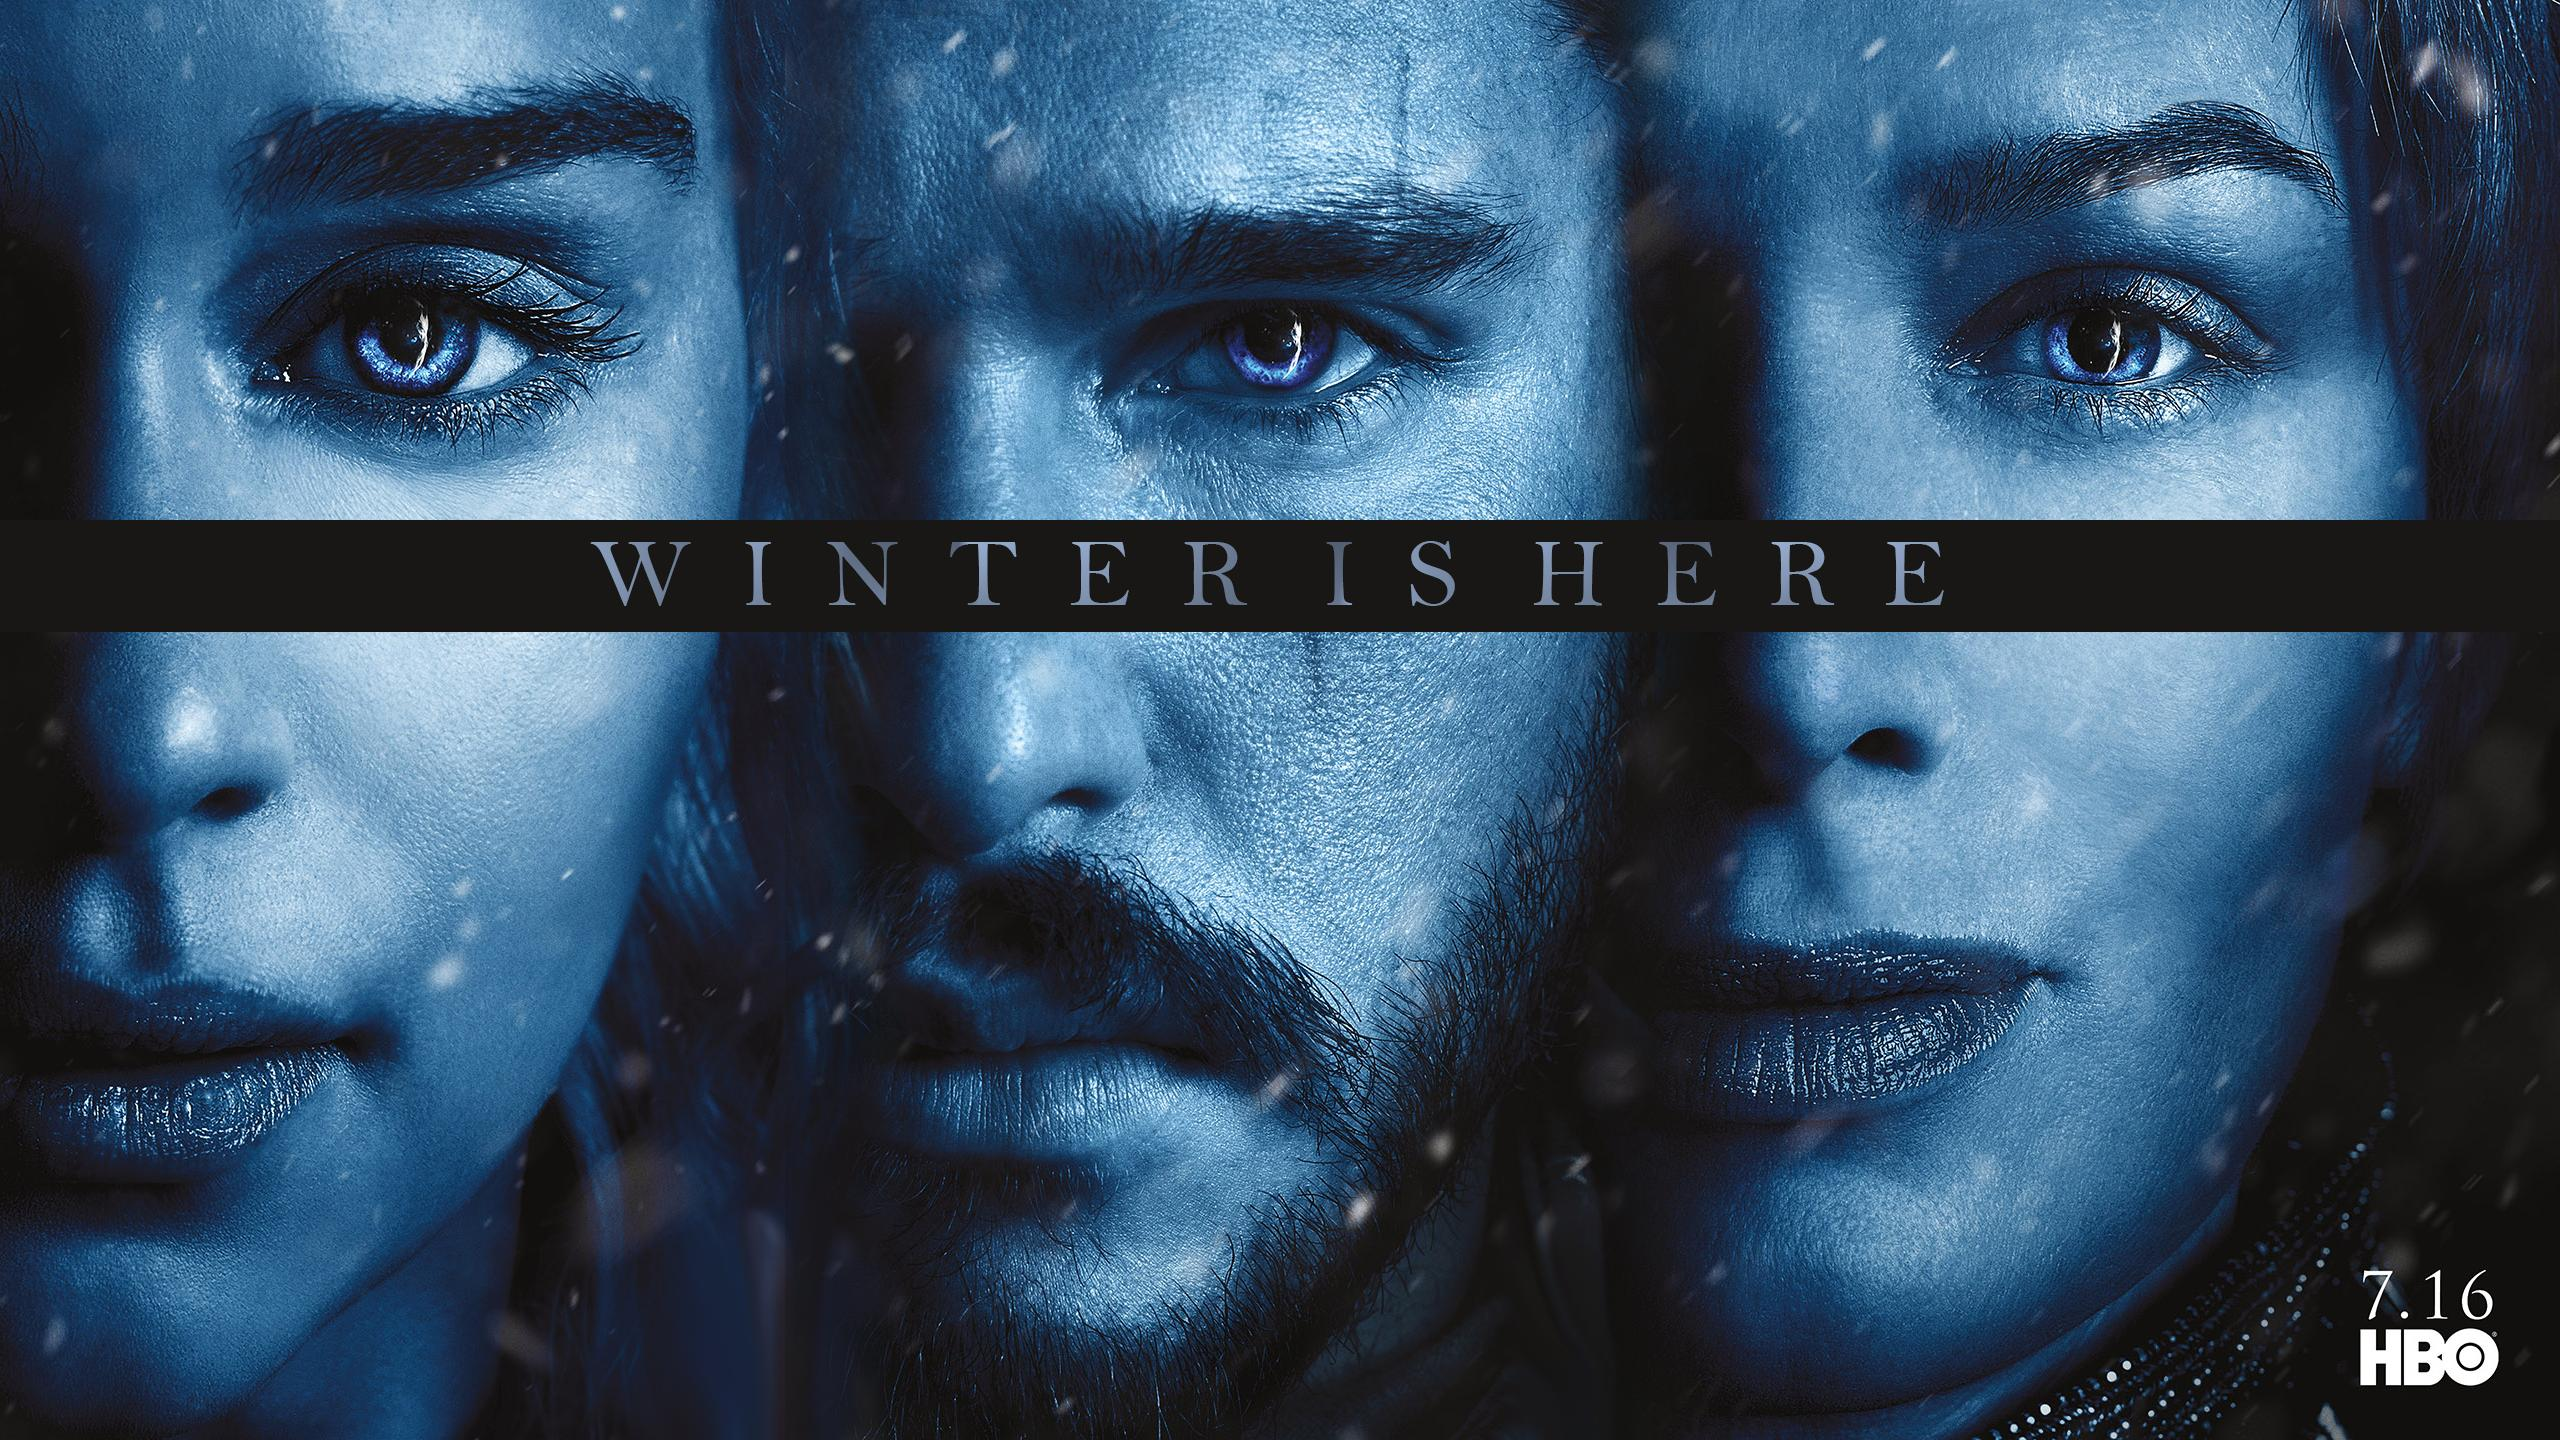 S7] Game Of thrones Season 7 Posters Wallpaper 2560 x 1440 1080p 2560x1440